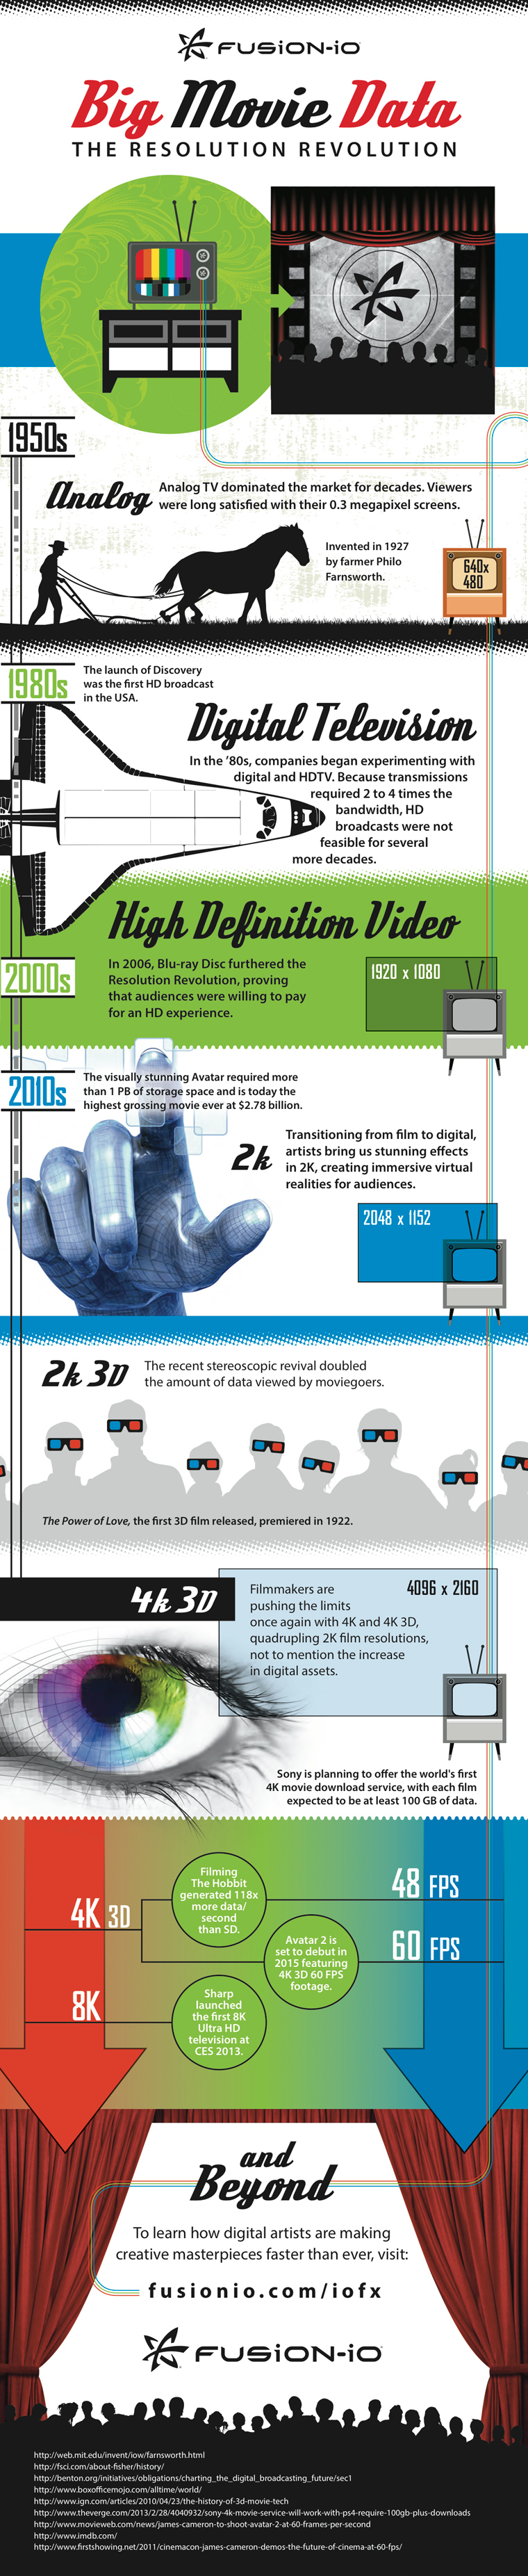 Big movie data infographic